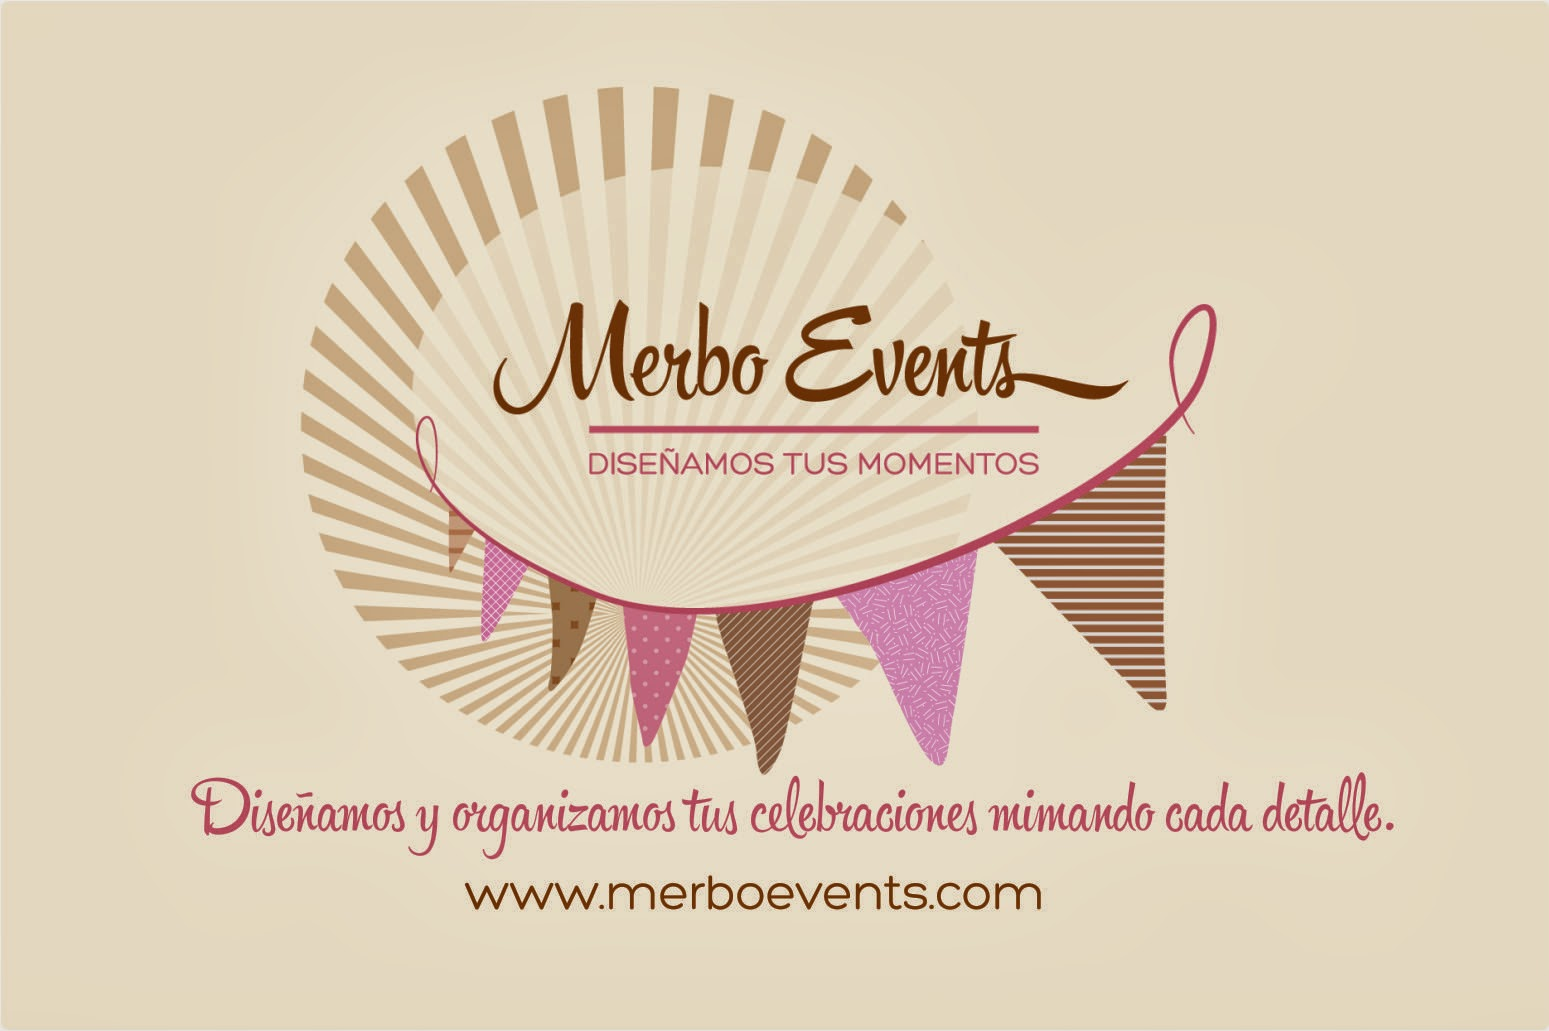 https://www.facebook.com/MerboEevents